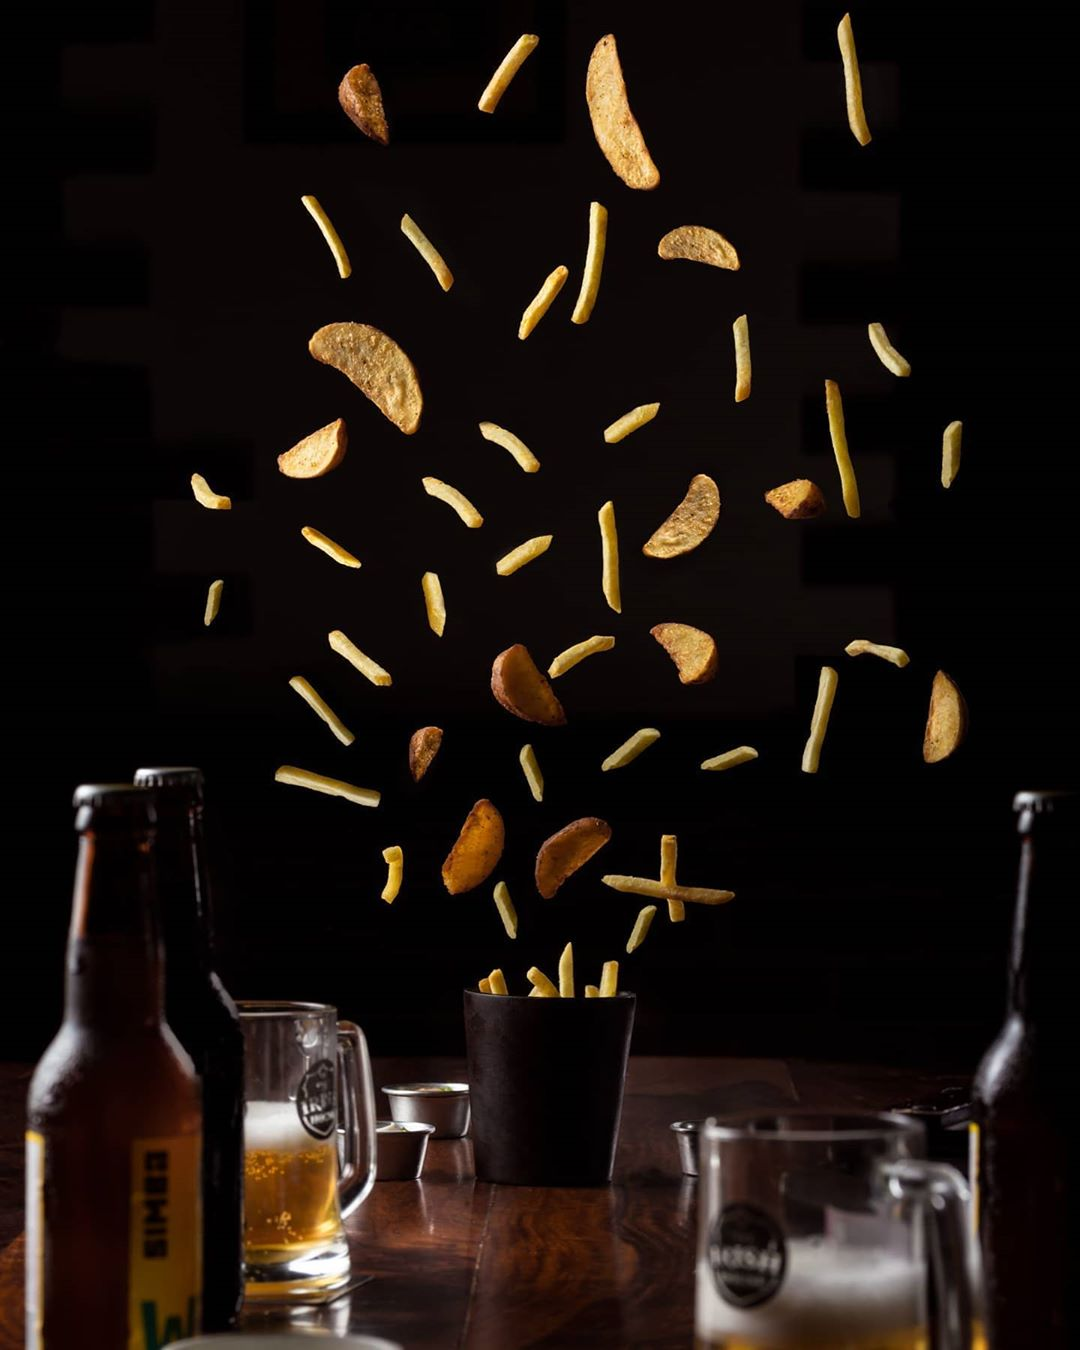 Chips Falling Down